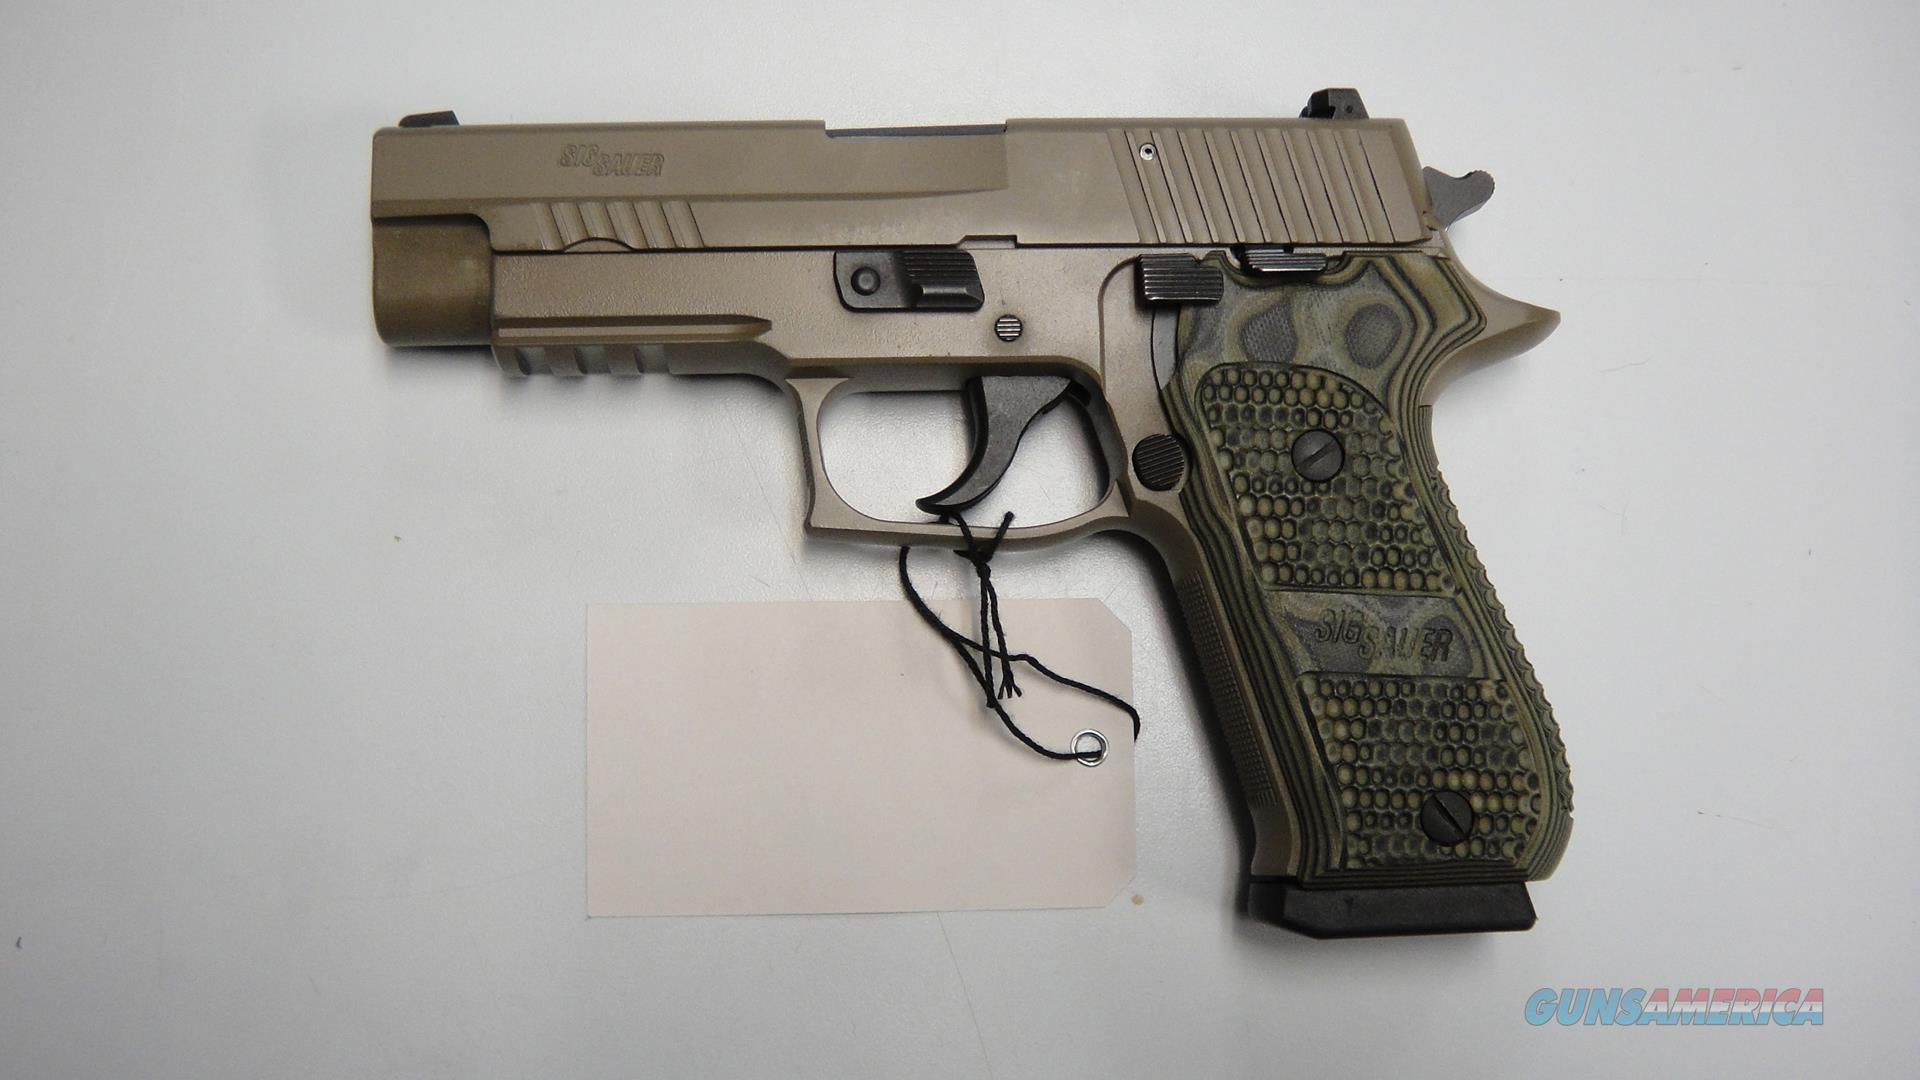 Sig Sauer P220 Elite Scorpion in FDE .45acp (USED)  Guns > Pistols > Sig - Sauer/Sigarms Pistols > P220